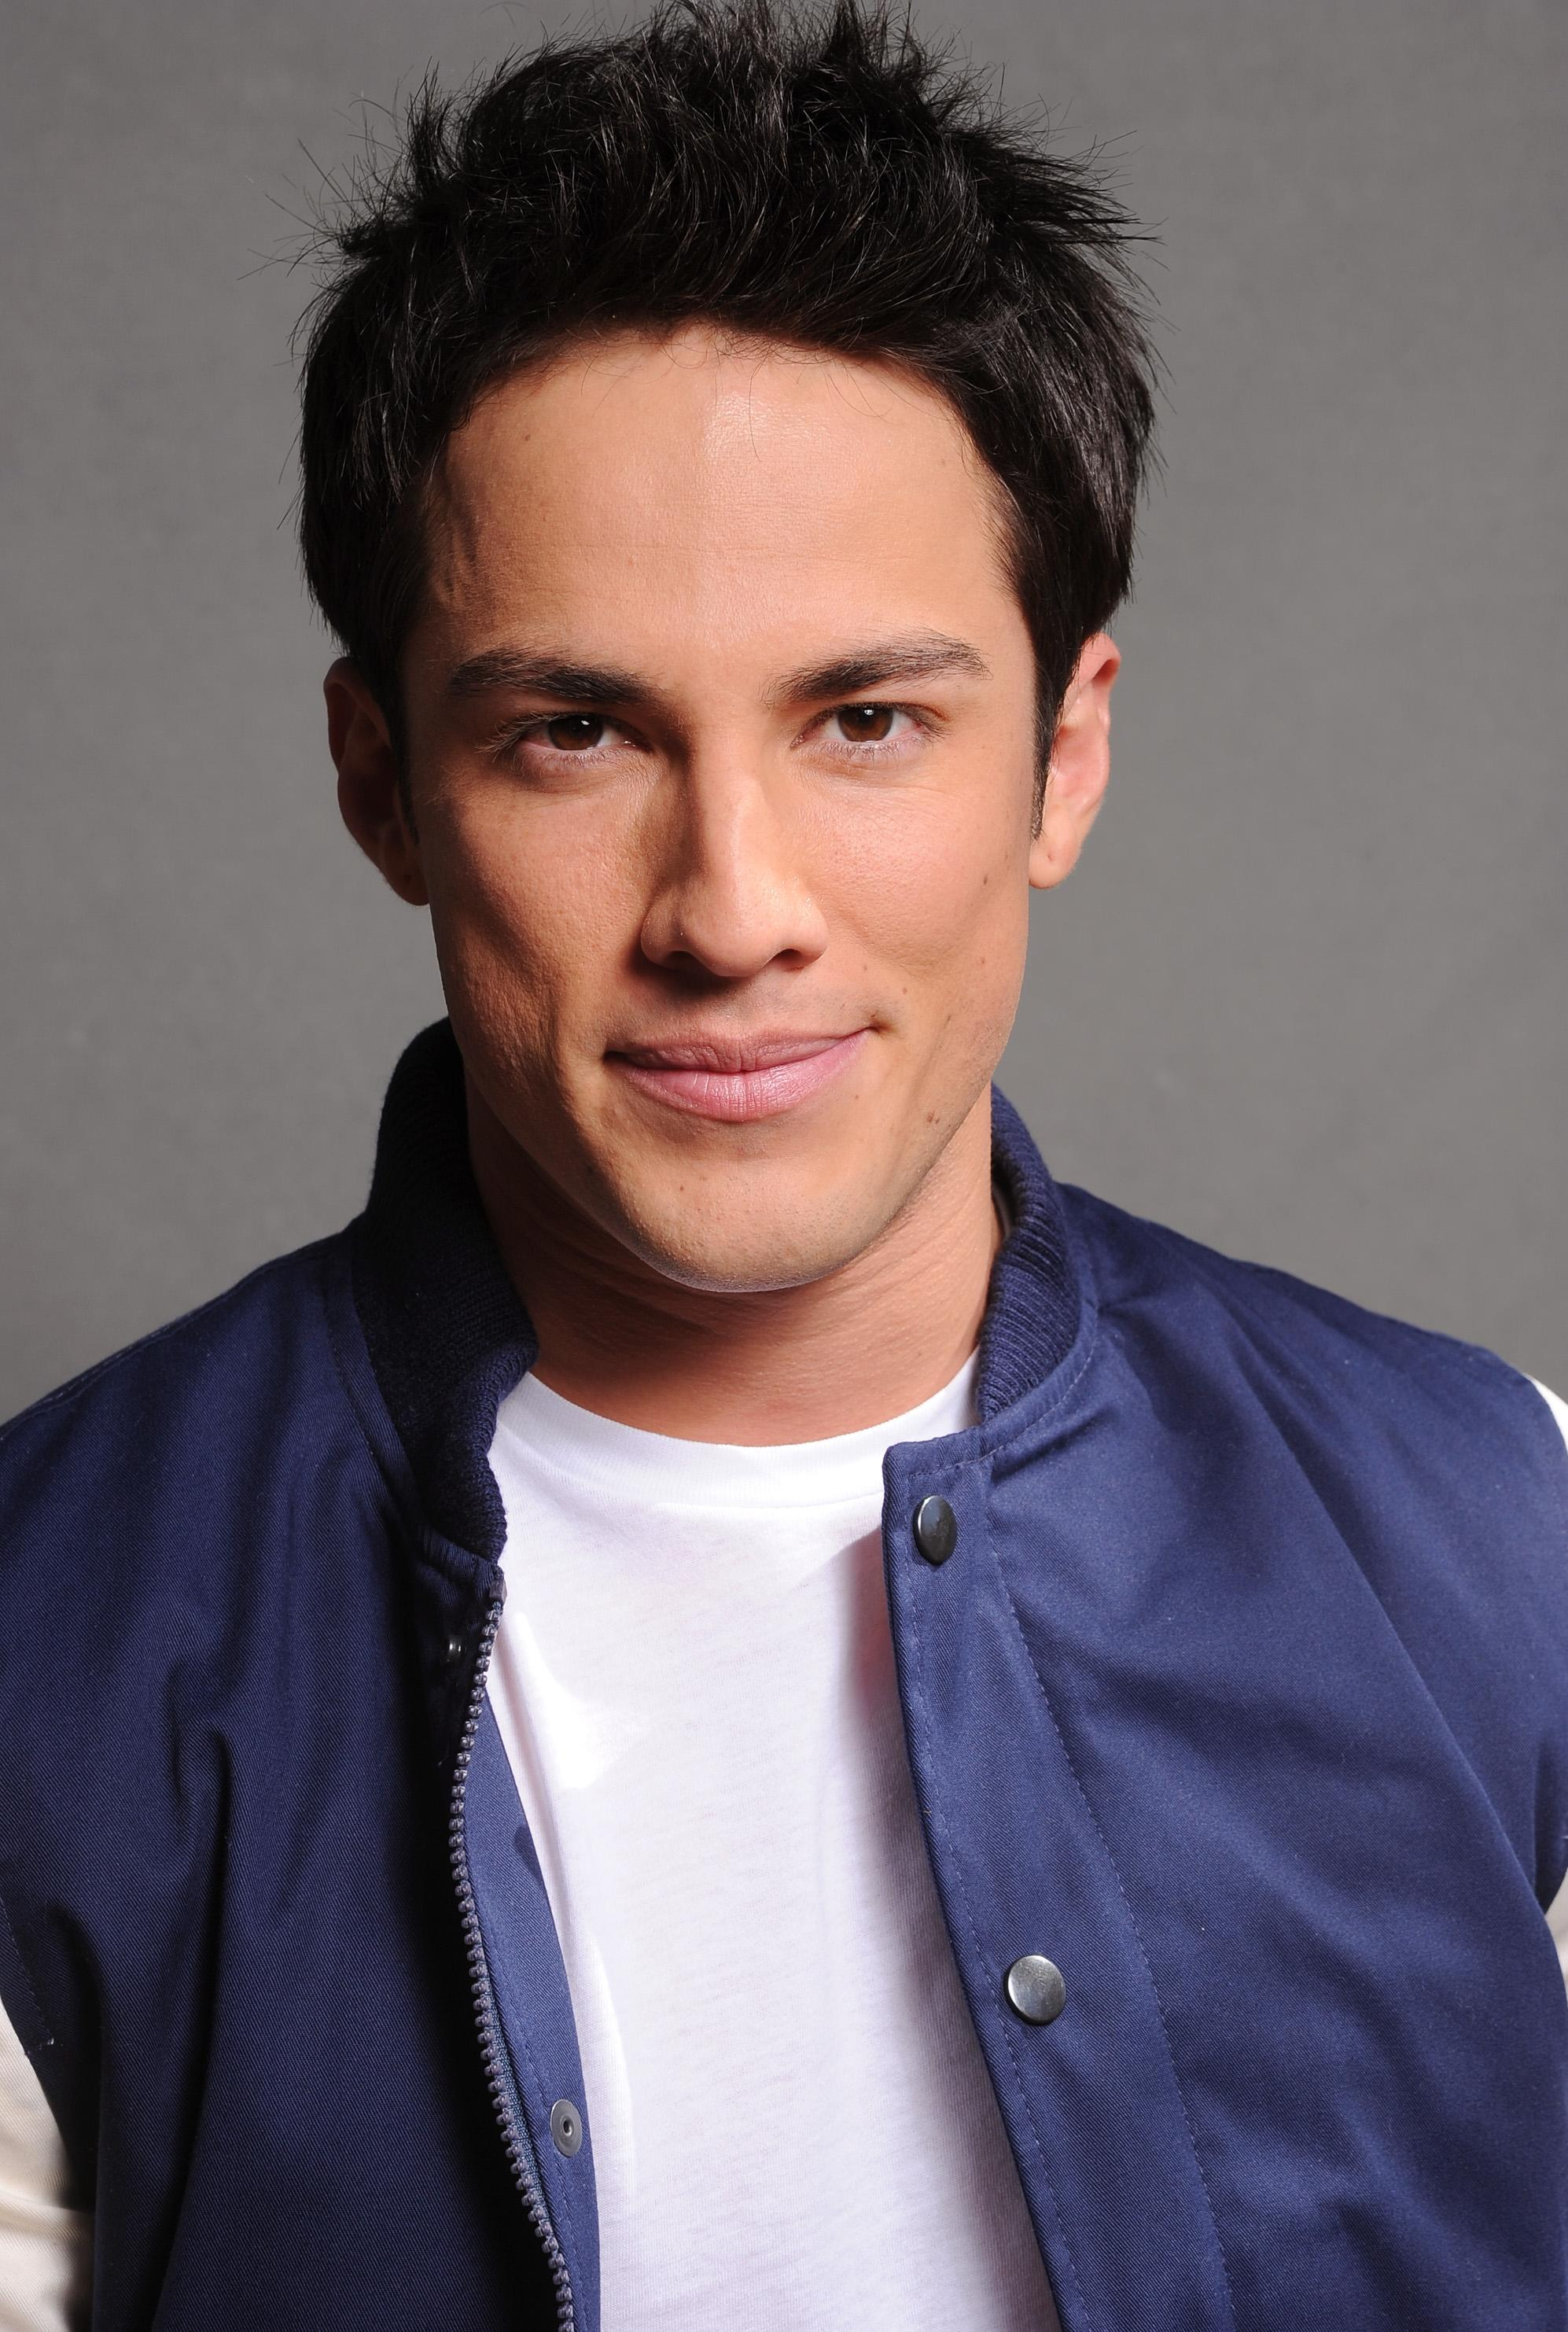 The 33-year old son of father (?) and mother(?), 175 cm tall Michael Trevino in 2018 photo